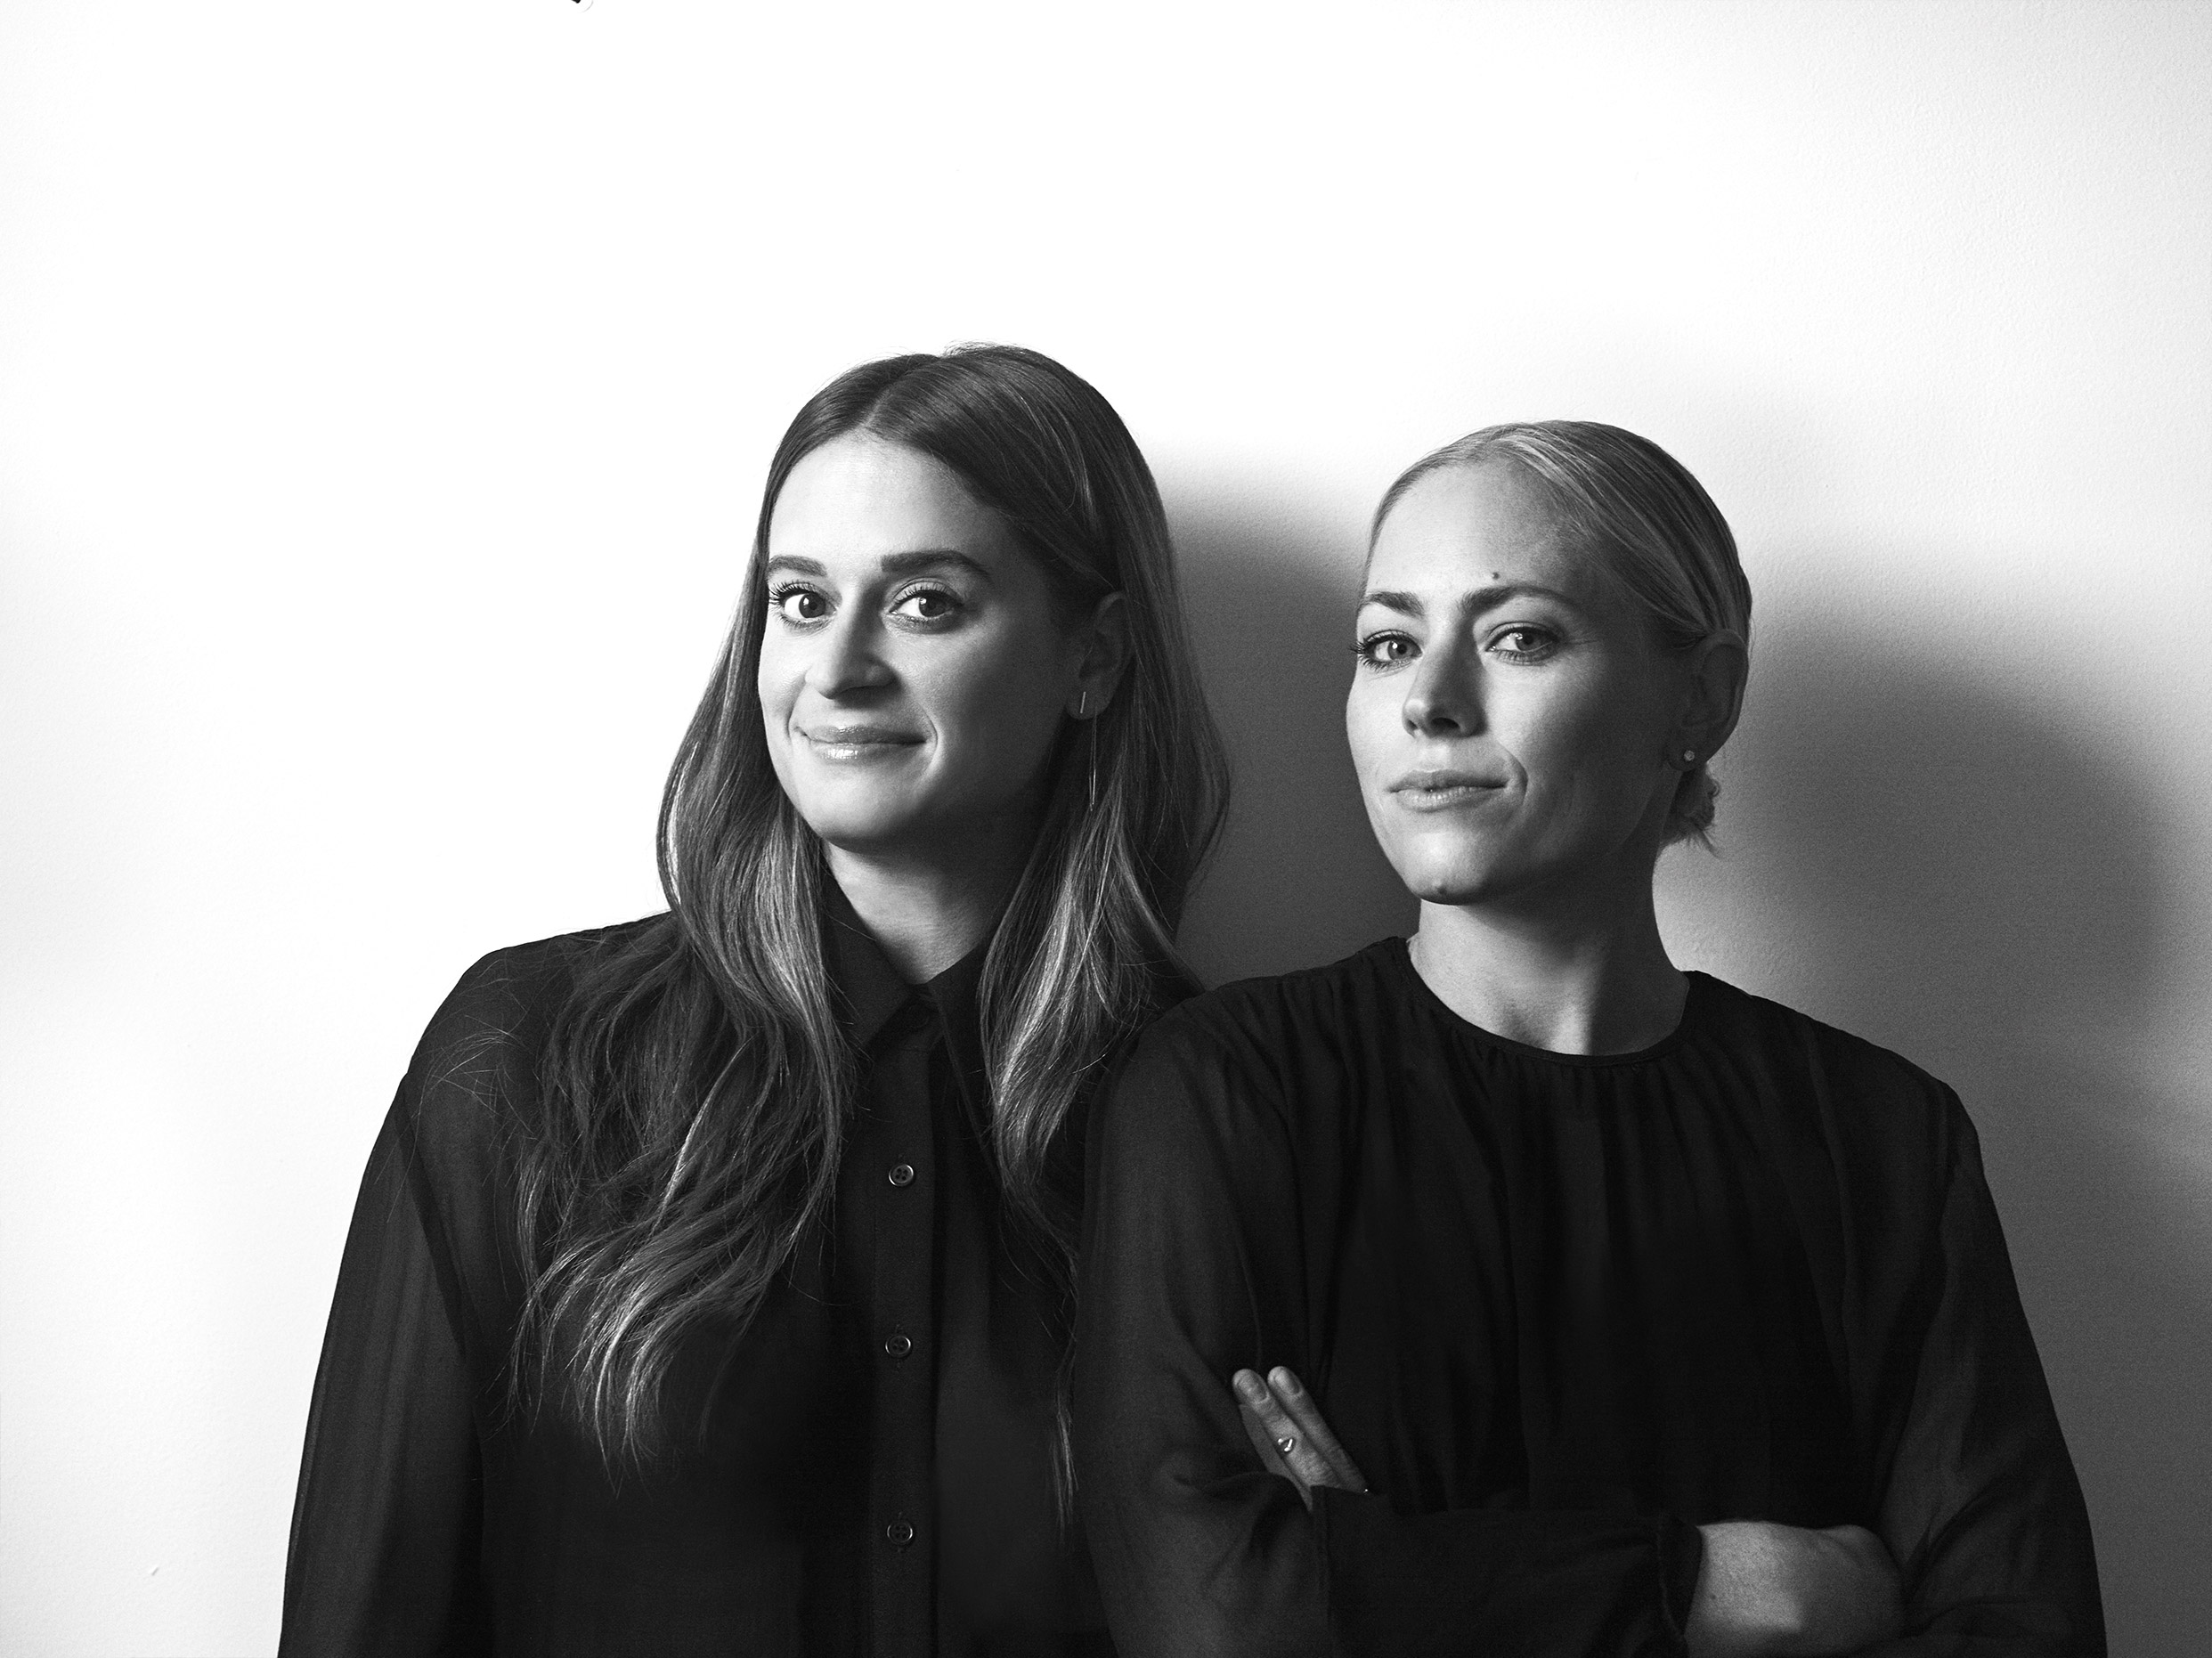 Cienne designers and founders